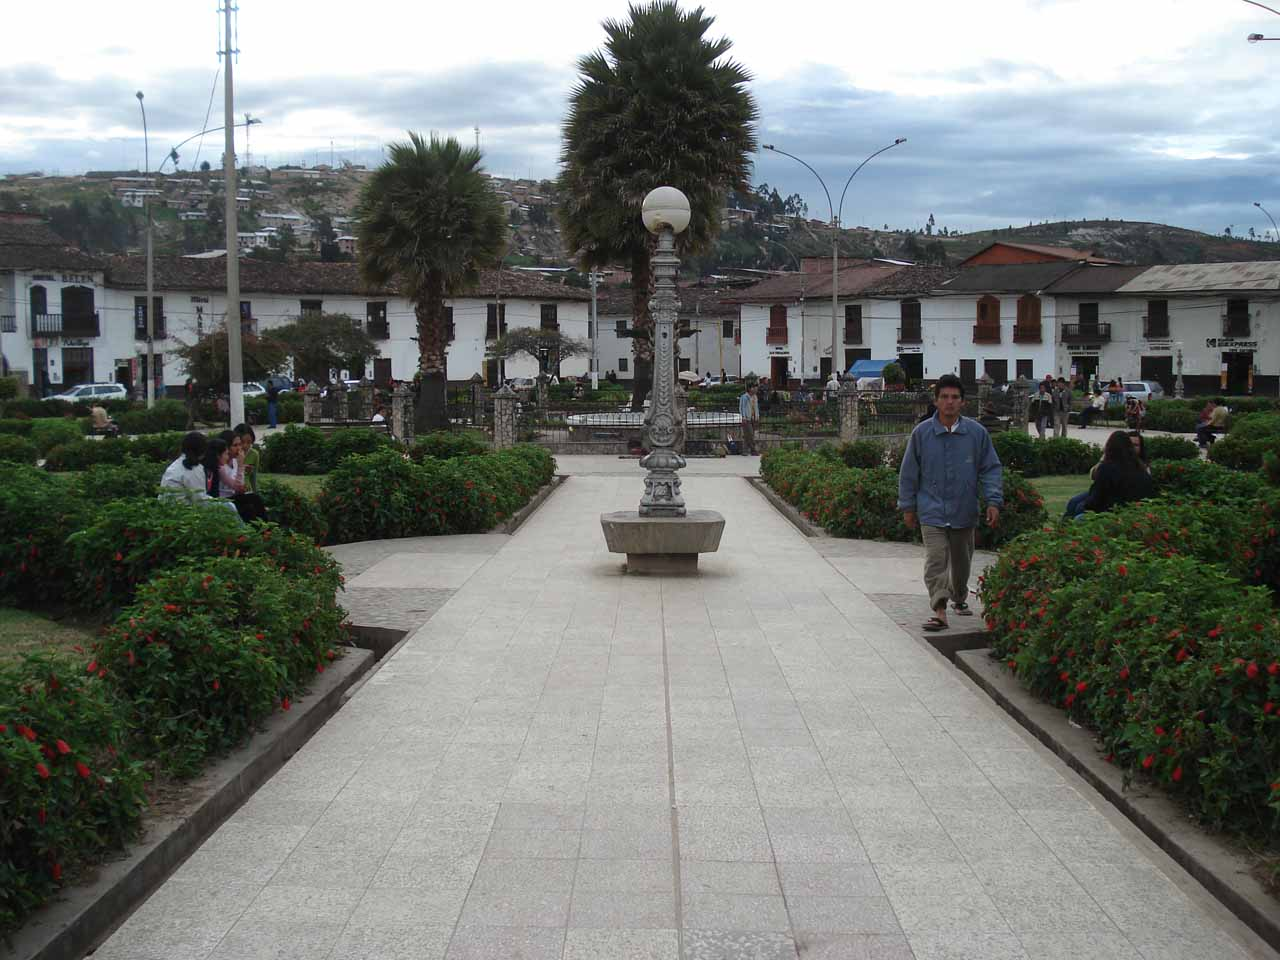 The town square in Chachapoyas